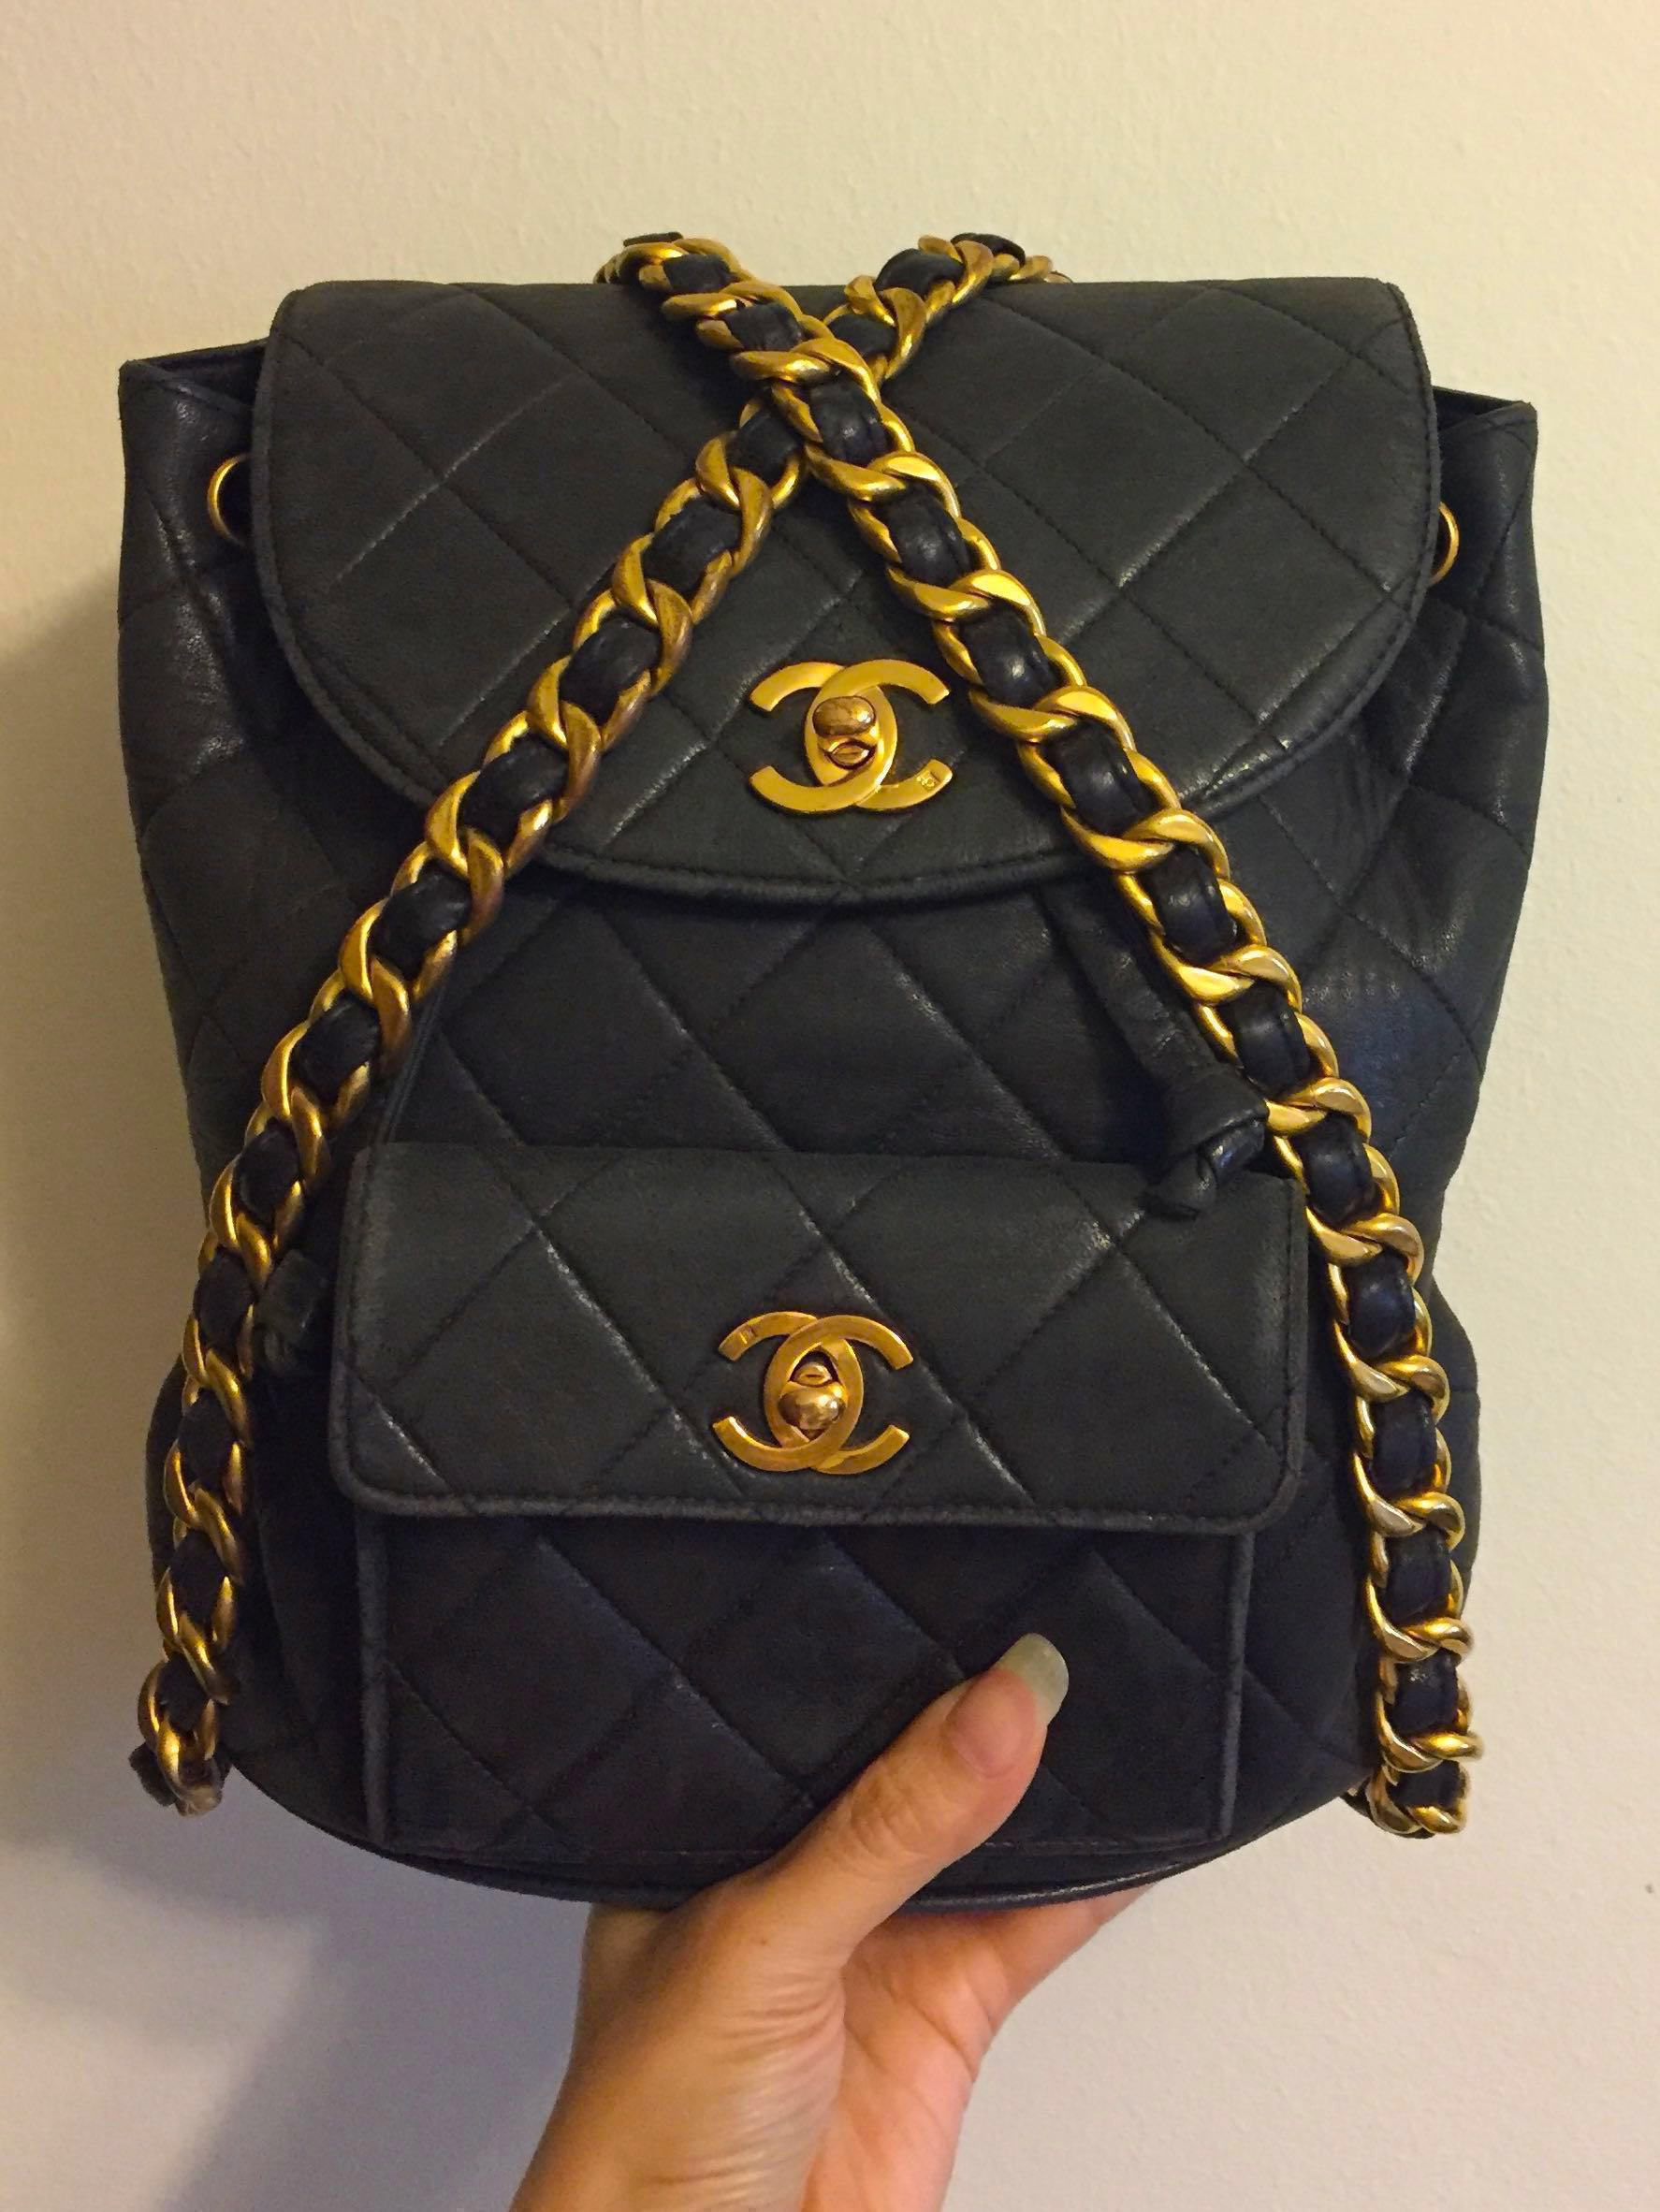 5bff6a6f5fe7 Chanel Vintage Backpack , Luxury, Bags & Wallets, Handbags on Carousell